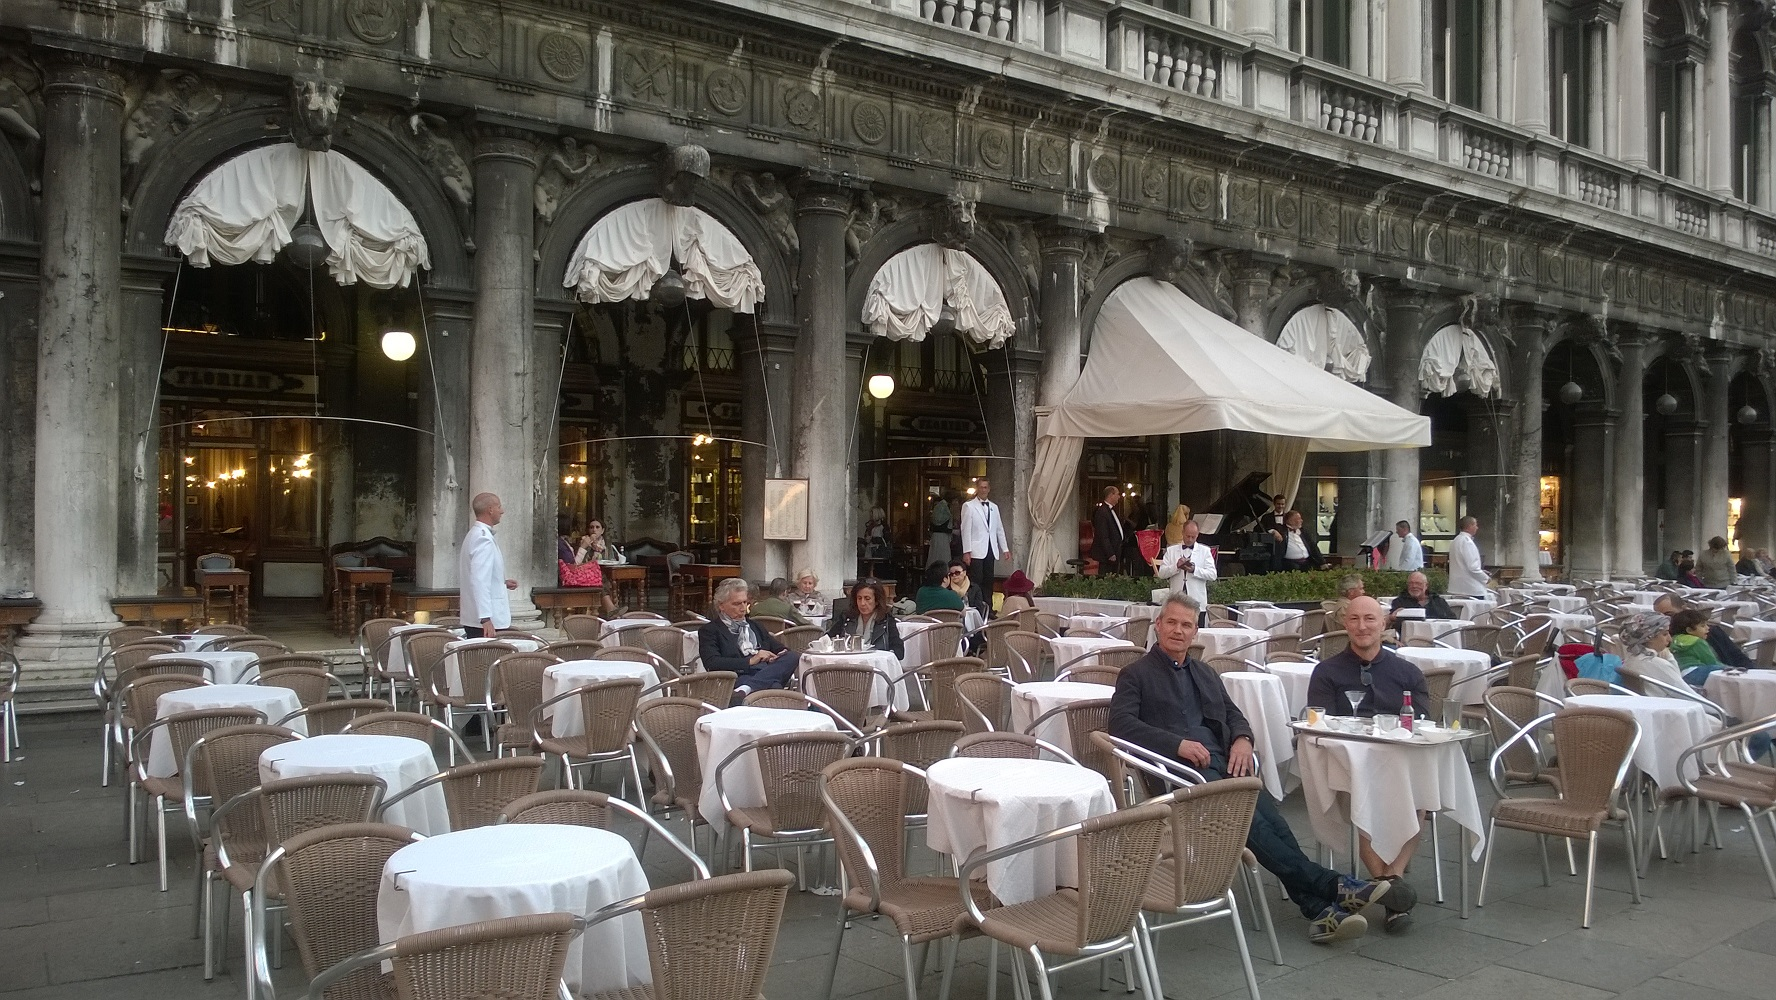 Cafes attract Prosecco + pastry-loving tourists